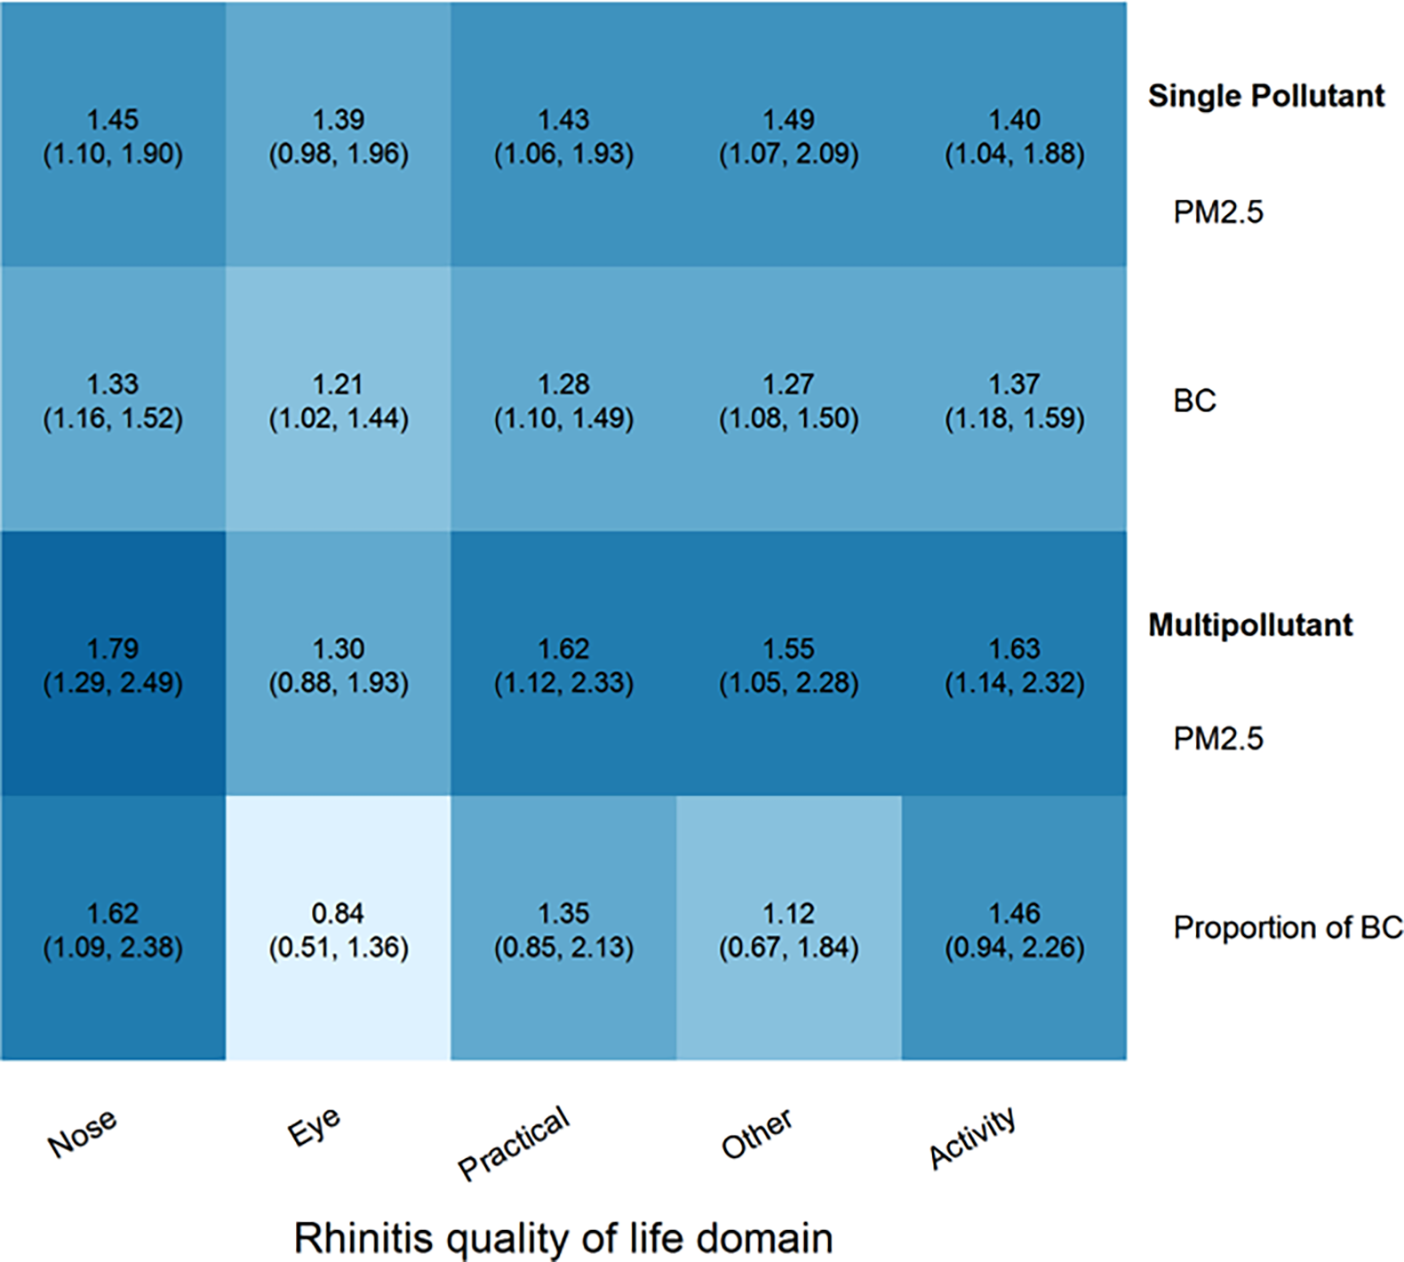 Single and multi-pollutant associations of PM2.5 and black carbon with rhinoconjunctivitis quality of life, by domain.